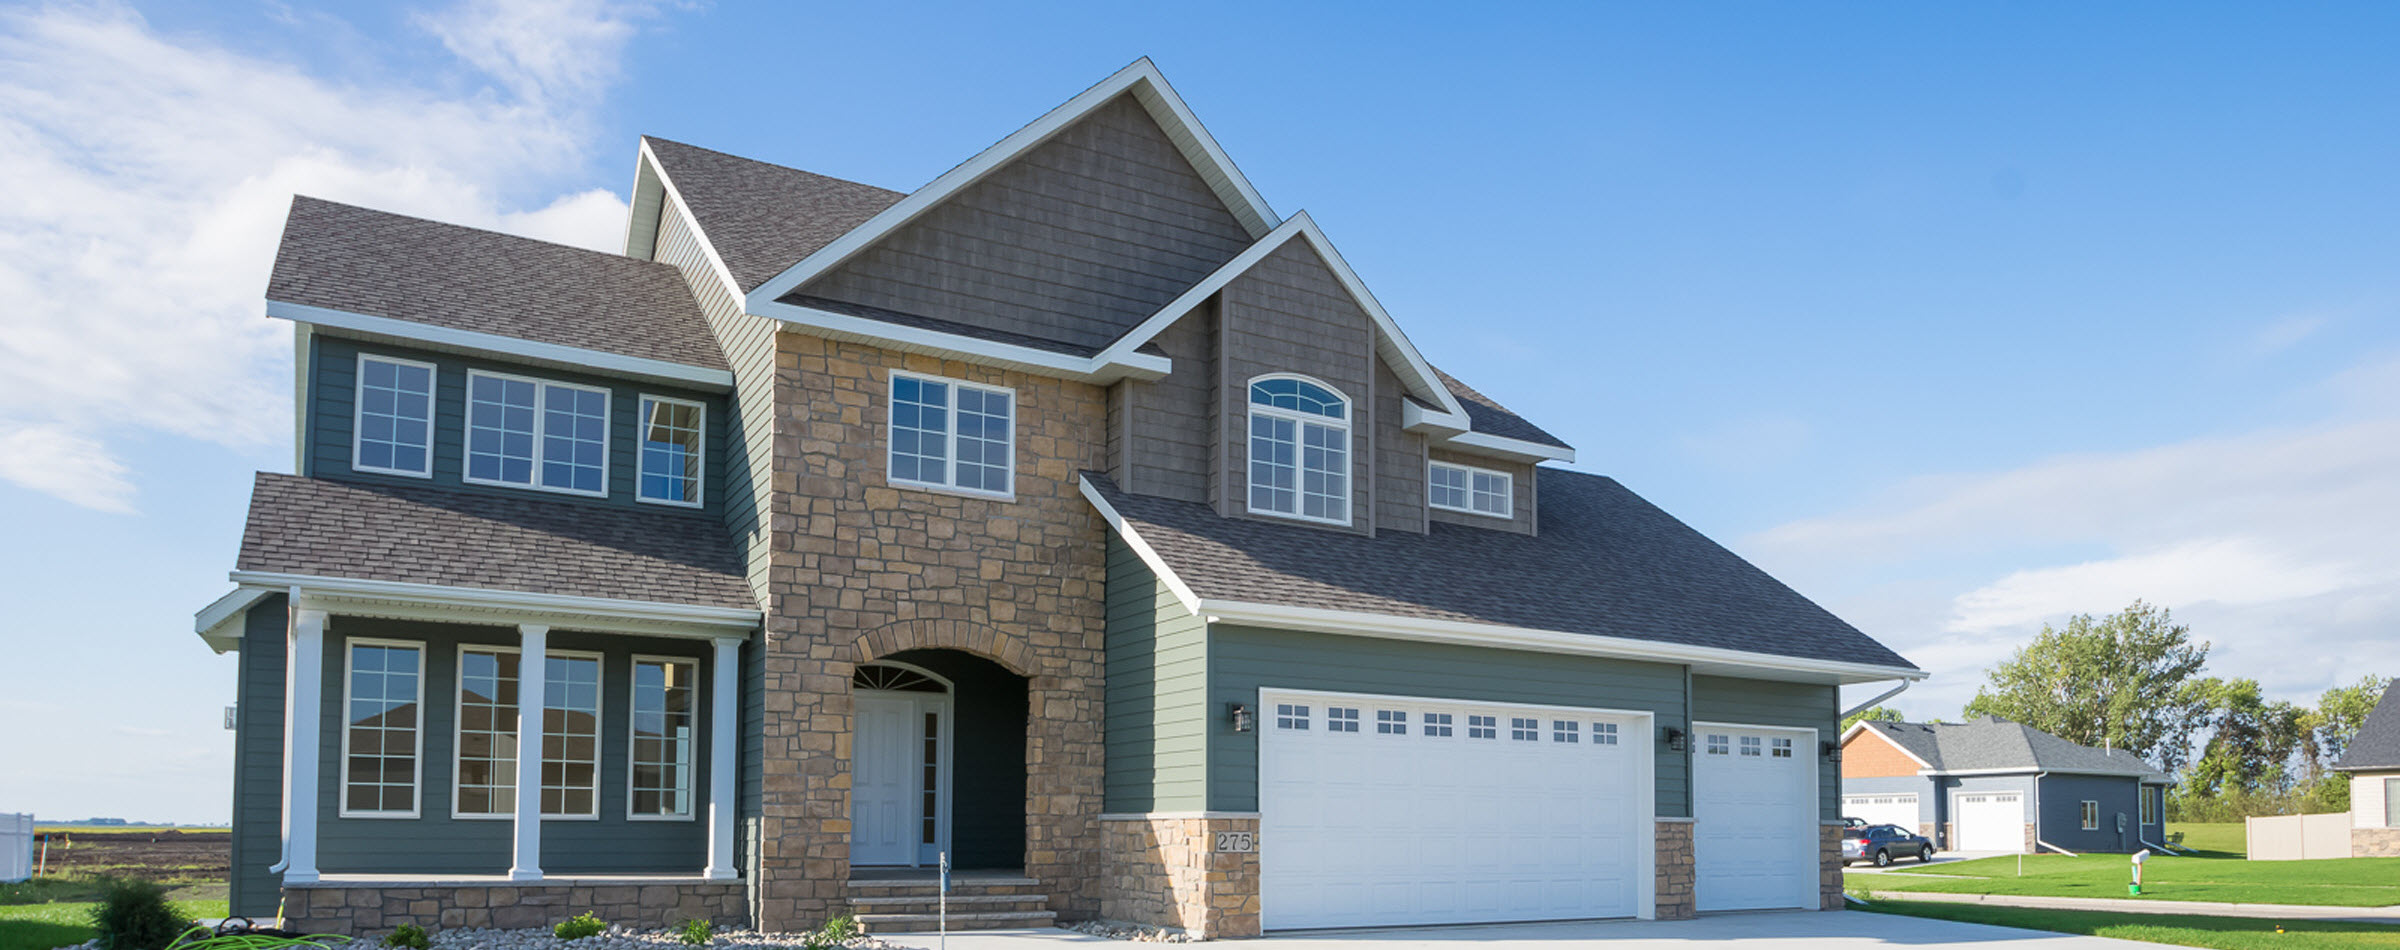 New Homes In Grand Forks Nd Devils Lake Nd Crary Real